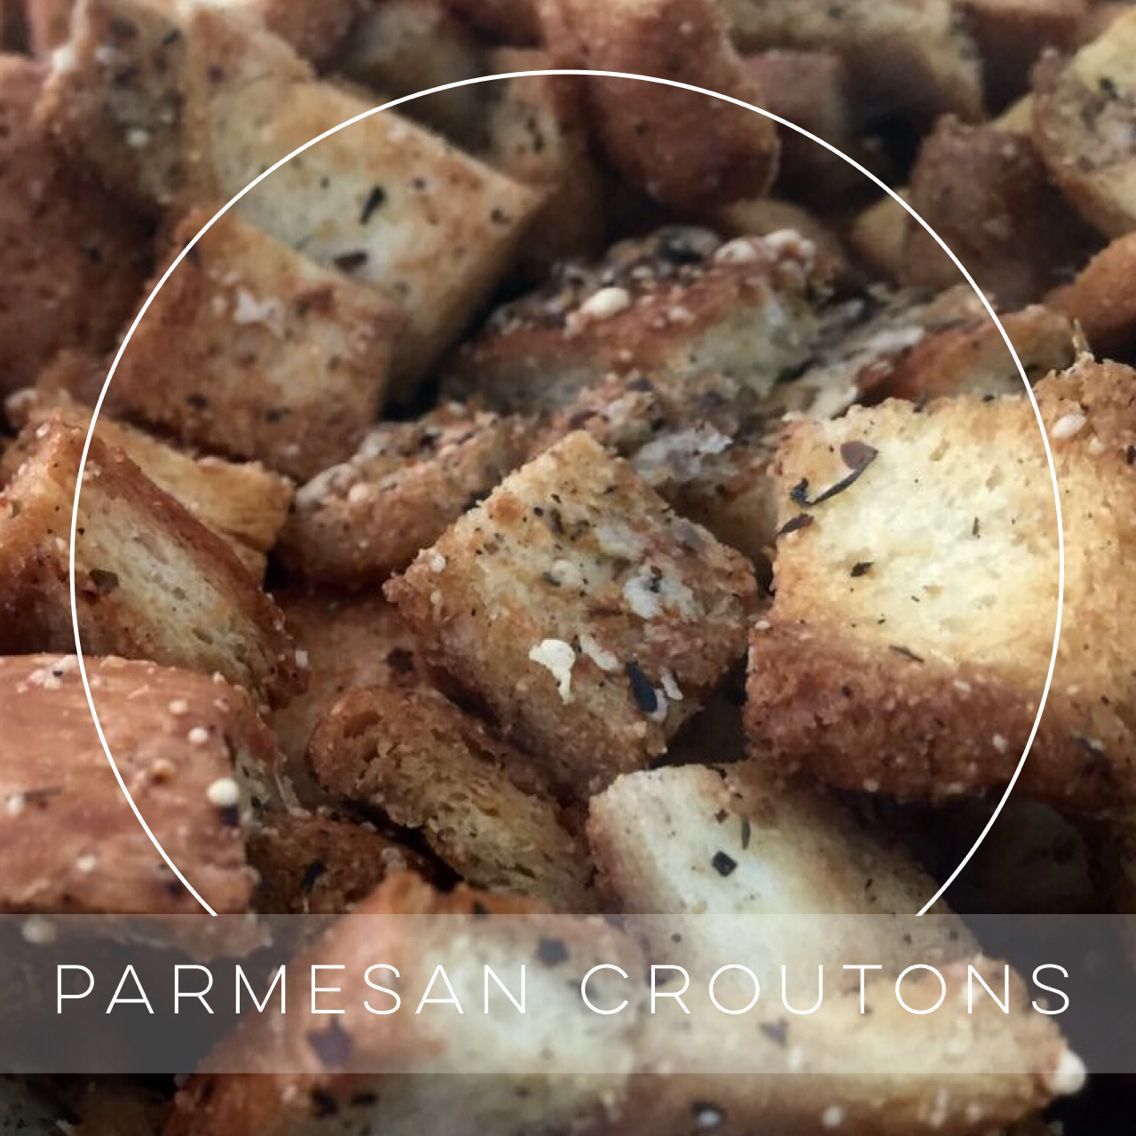 Parmesan croutons fresh from the oven.